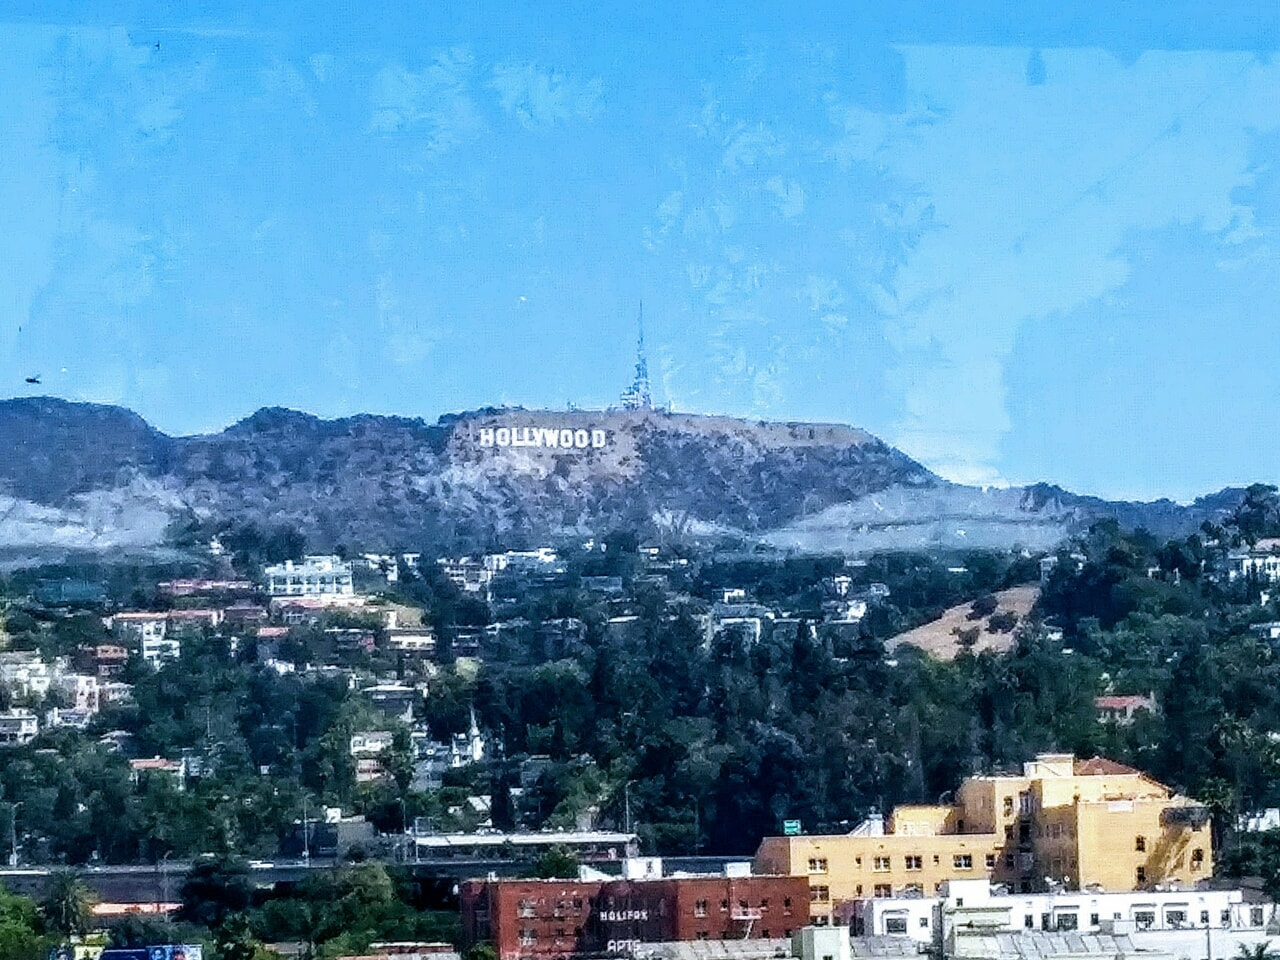 escape, hollywood, and dreamhotel image